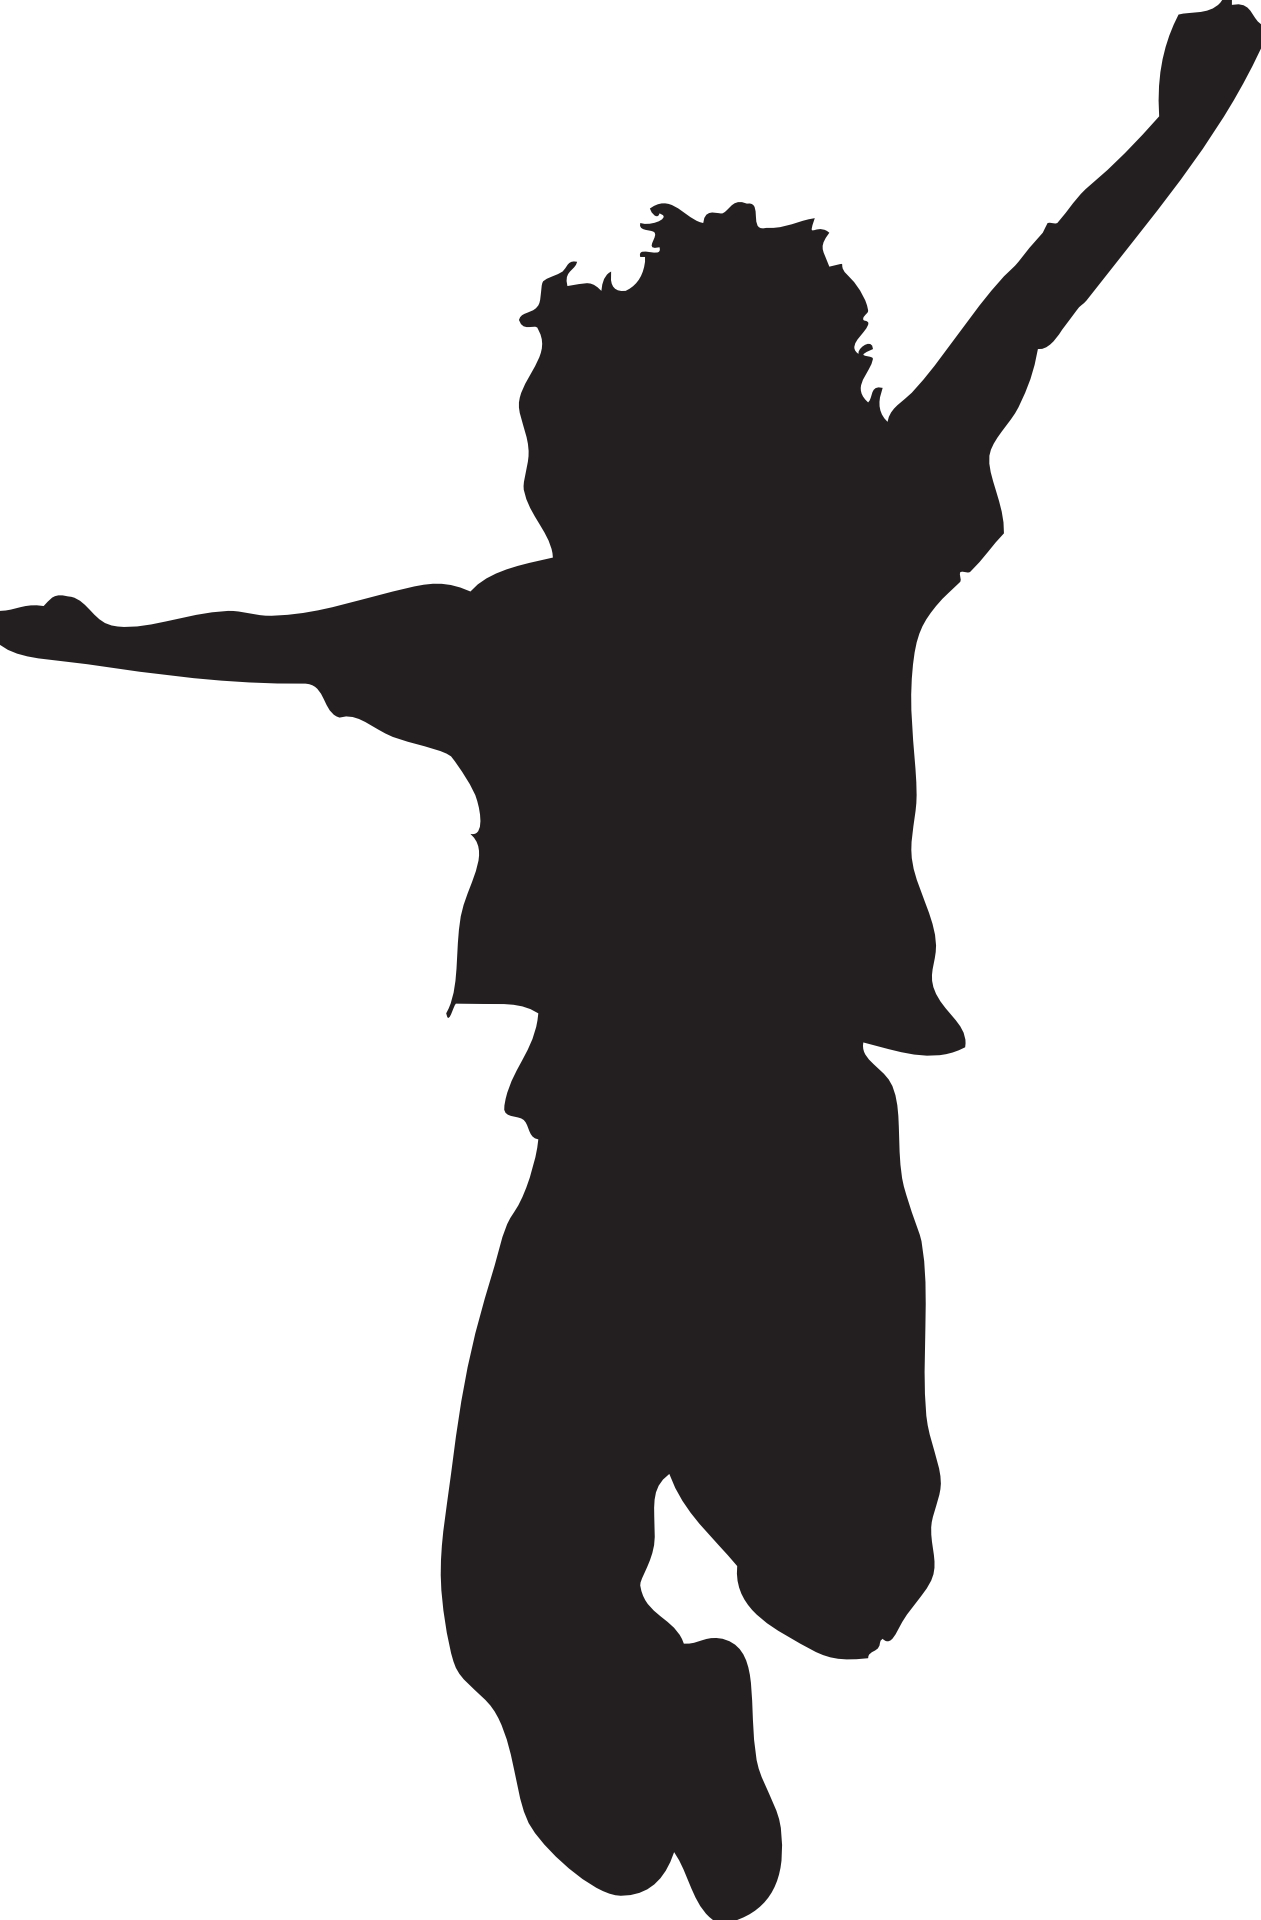 Jumping Silhouette   Clipart Best